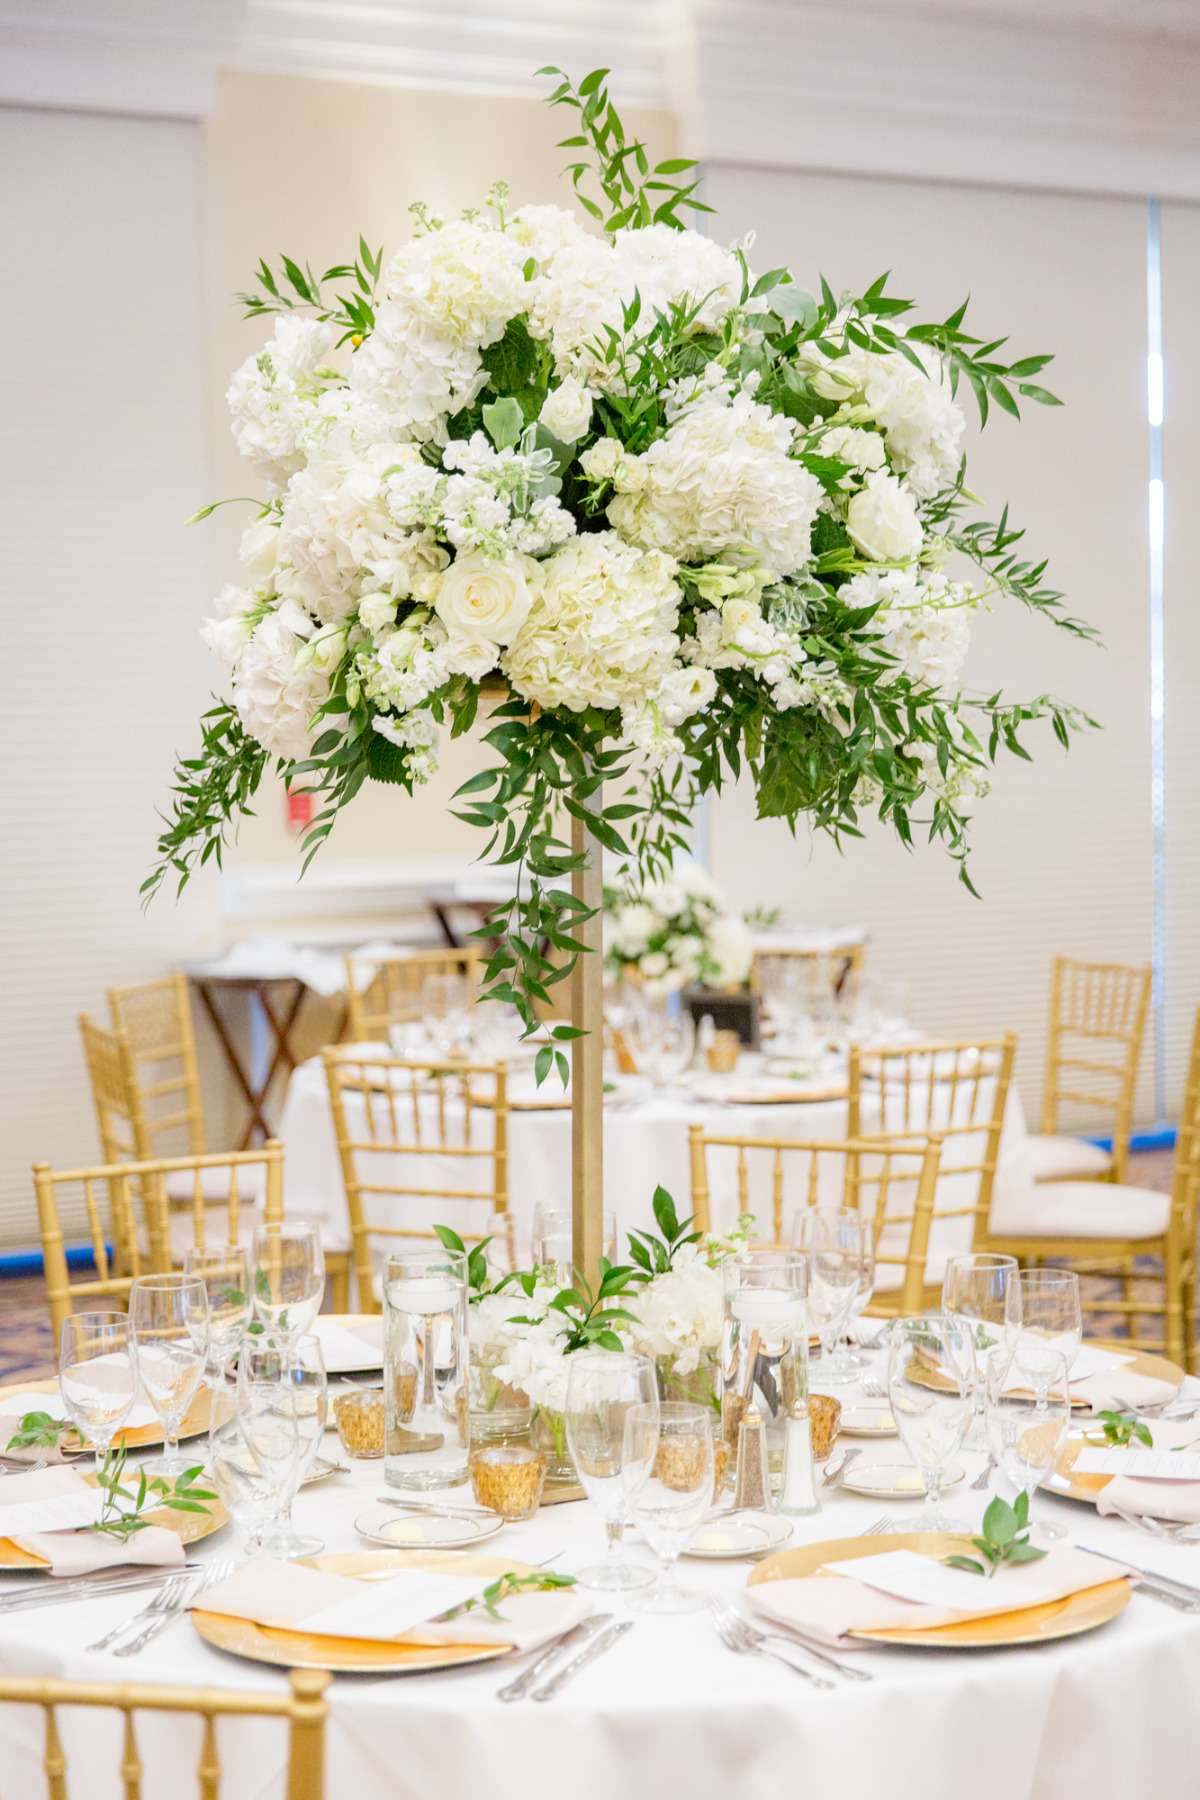 Tall white and green centerpiece